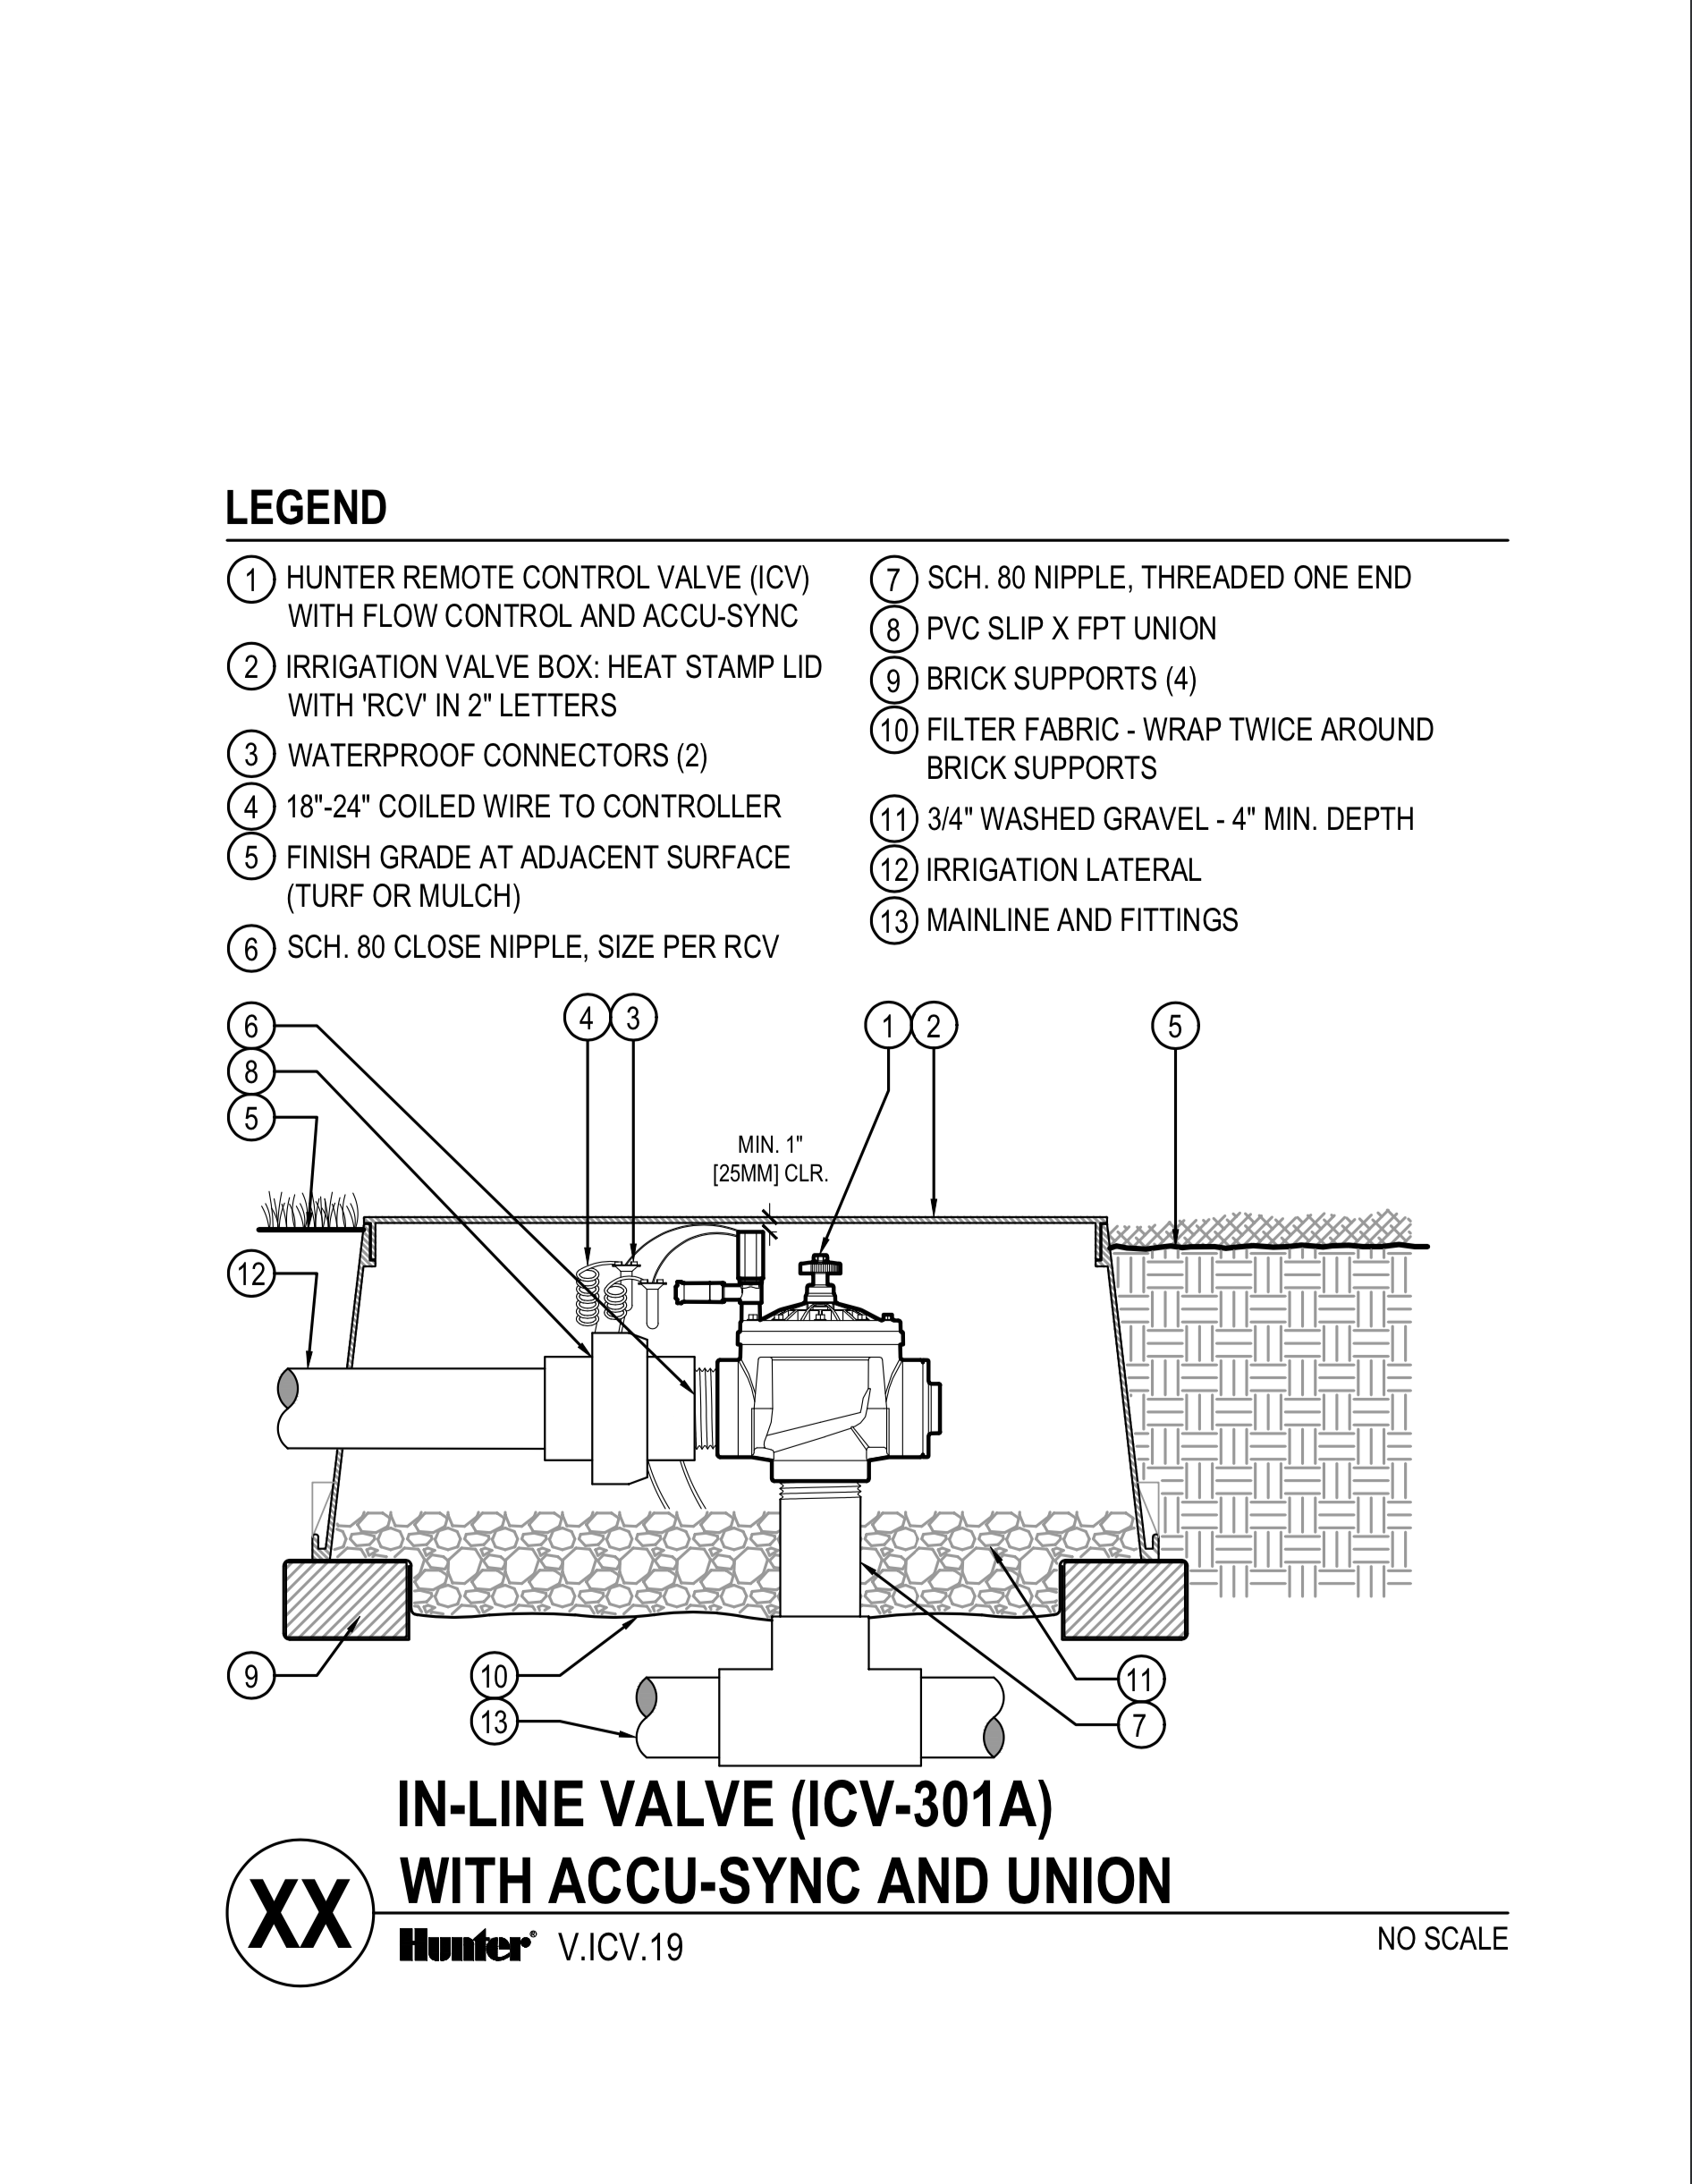 CAD - ICV-301A With Accu Sync